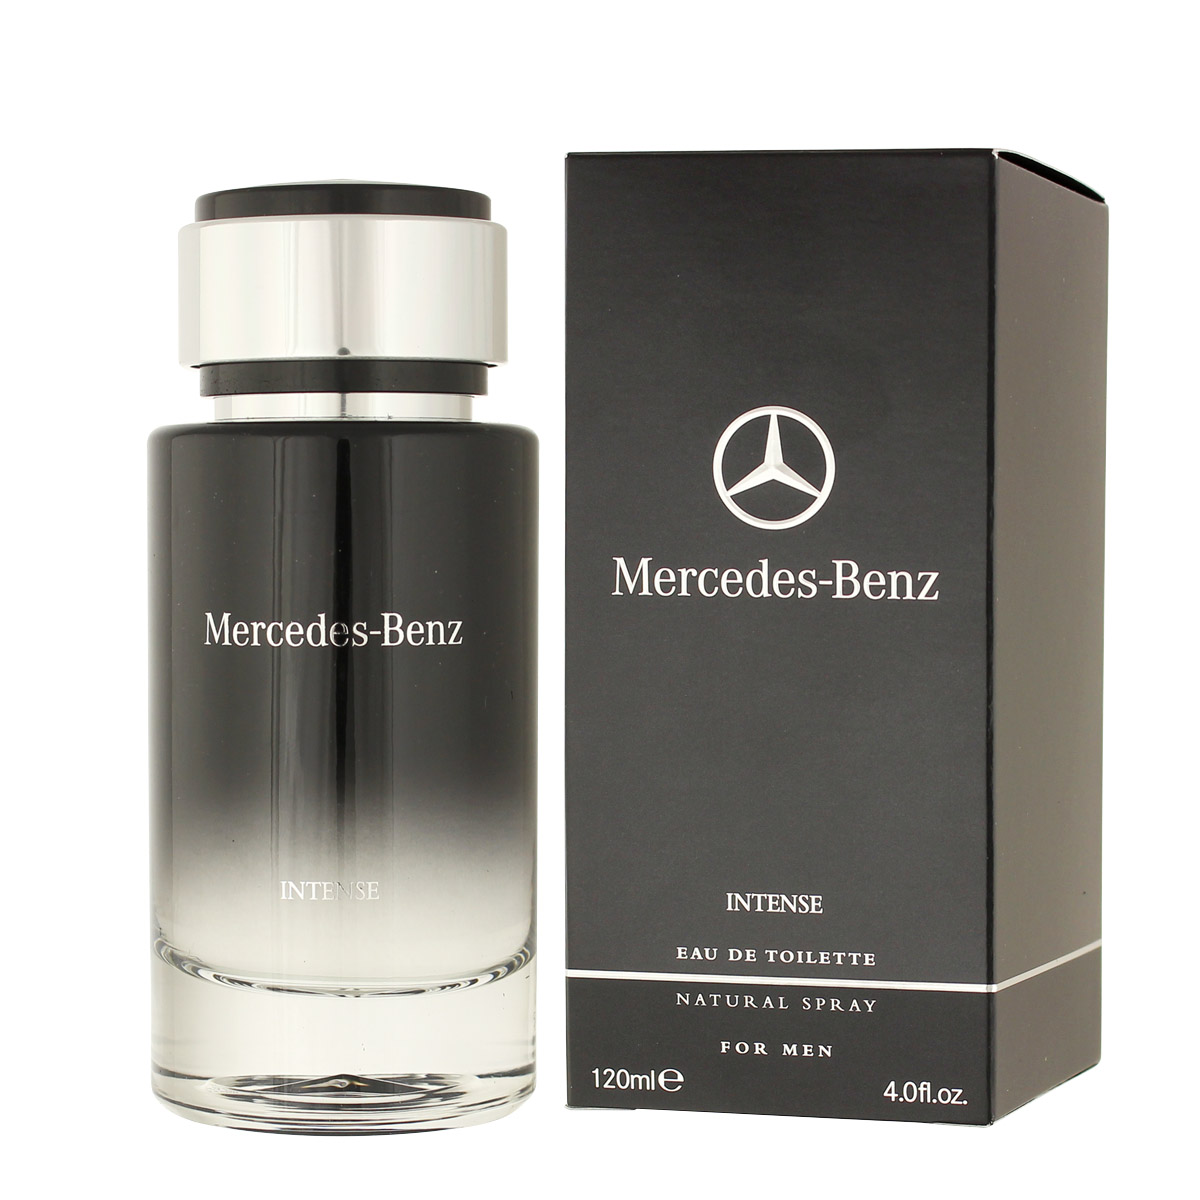 Mercedes benz intense toaletni voda 75 ml nejrychlej cz for Mercedes benz independence blvd